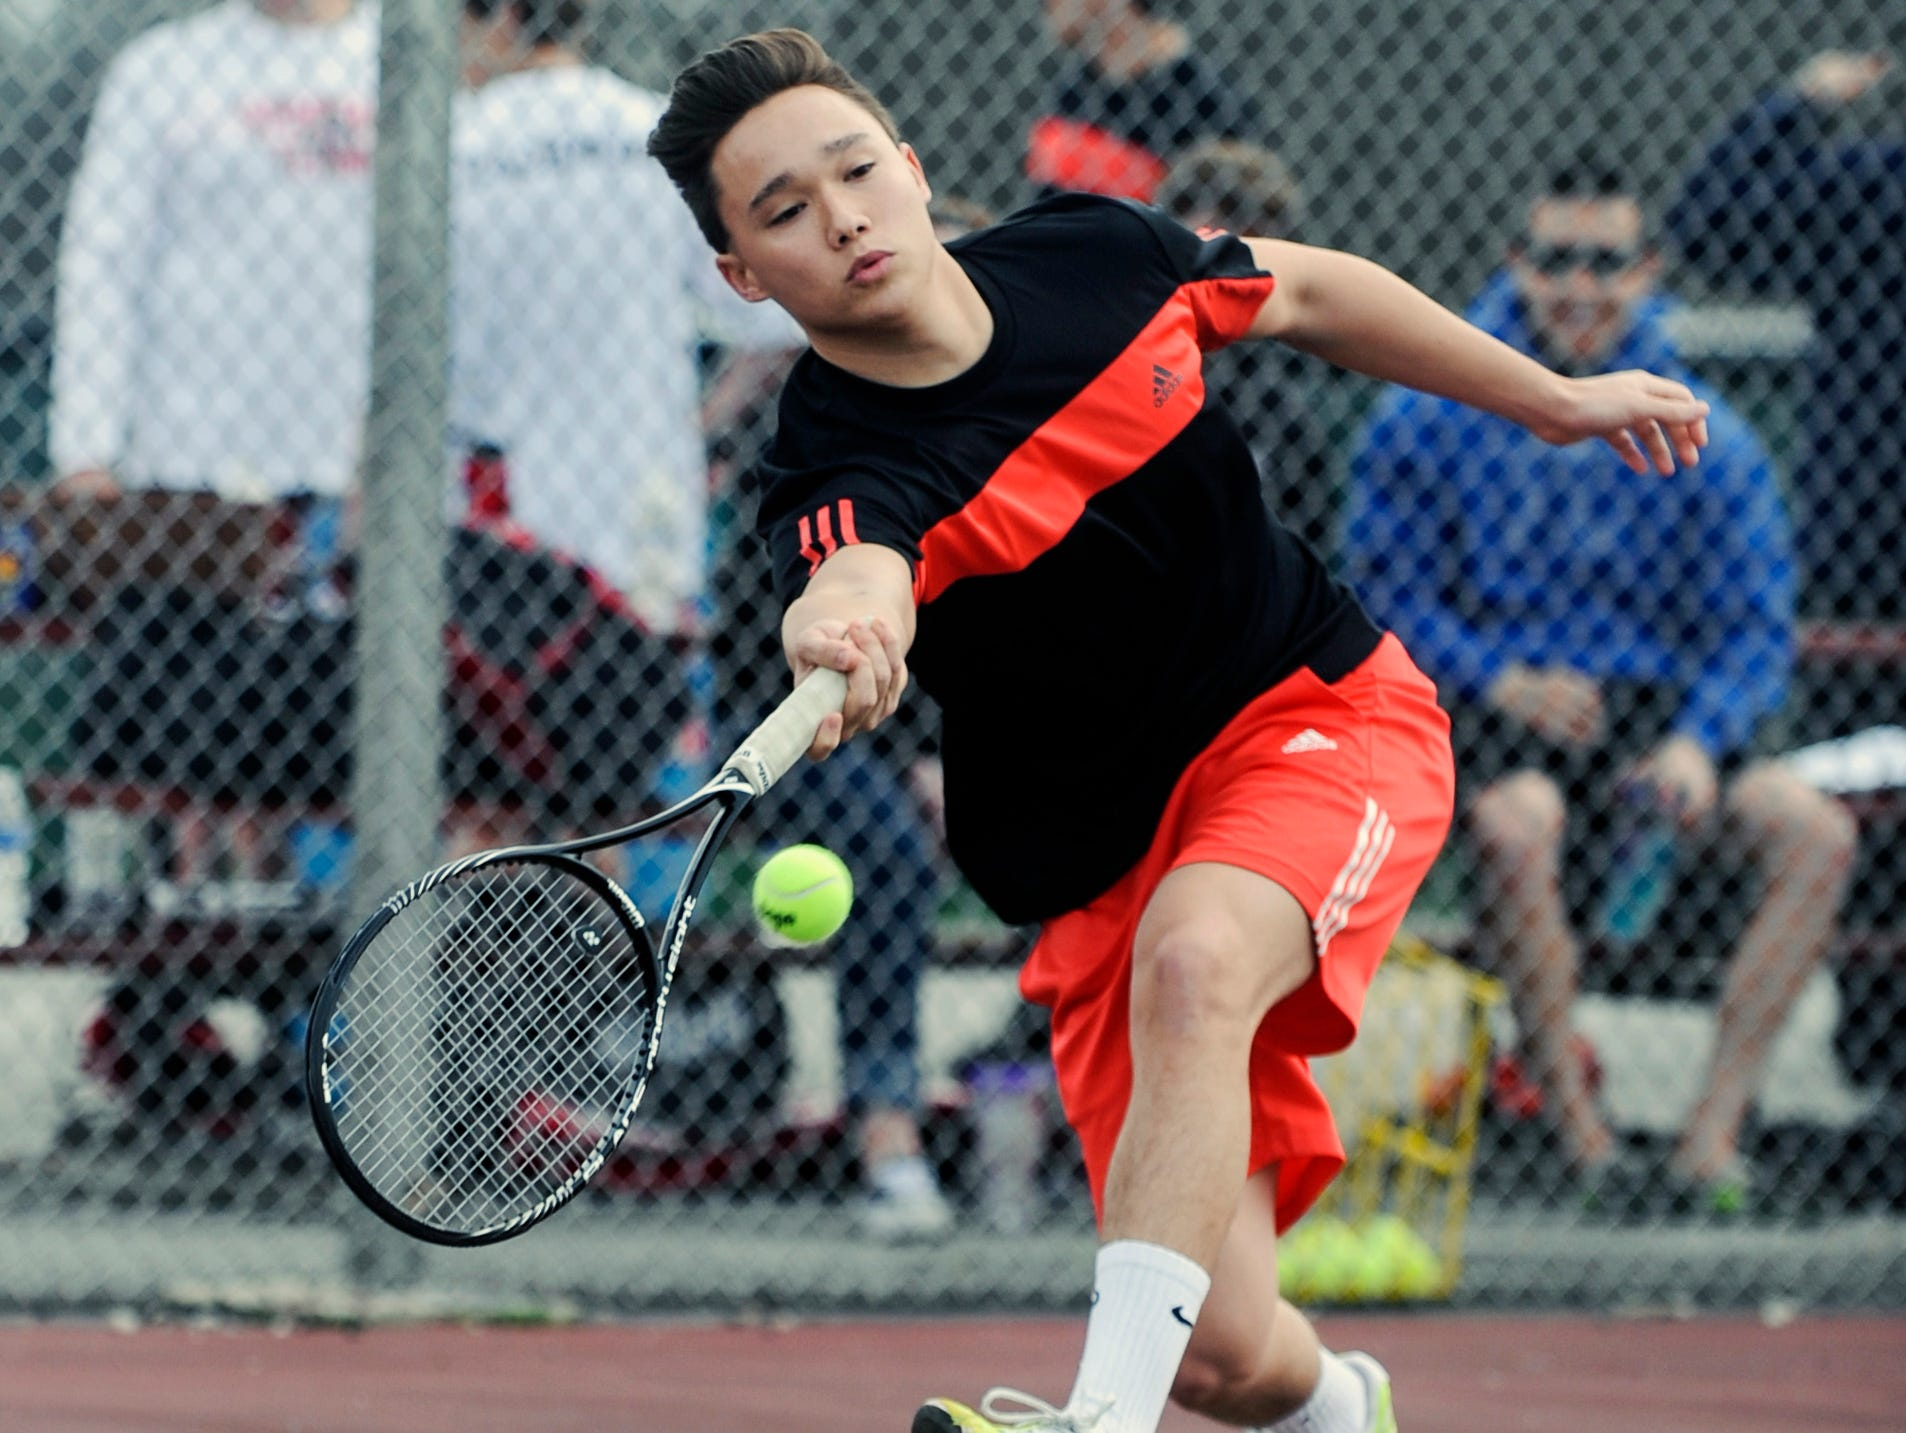 Pleasant's Christian Vaflor stretches out to return a serve from Harding's Win Adissem during their match at Pleasant High School on Tuesday, April 14, 2015.